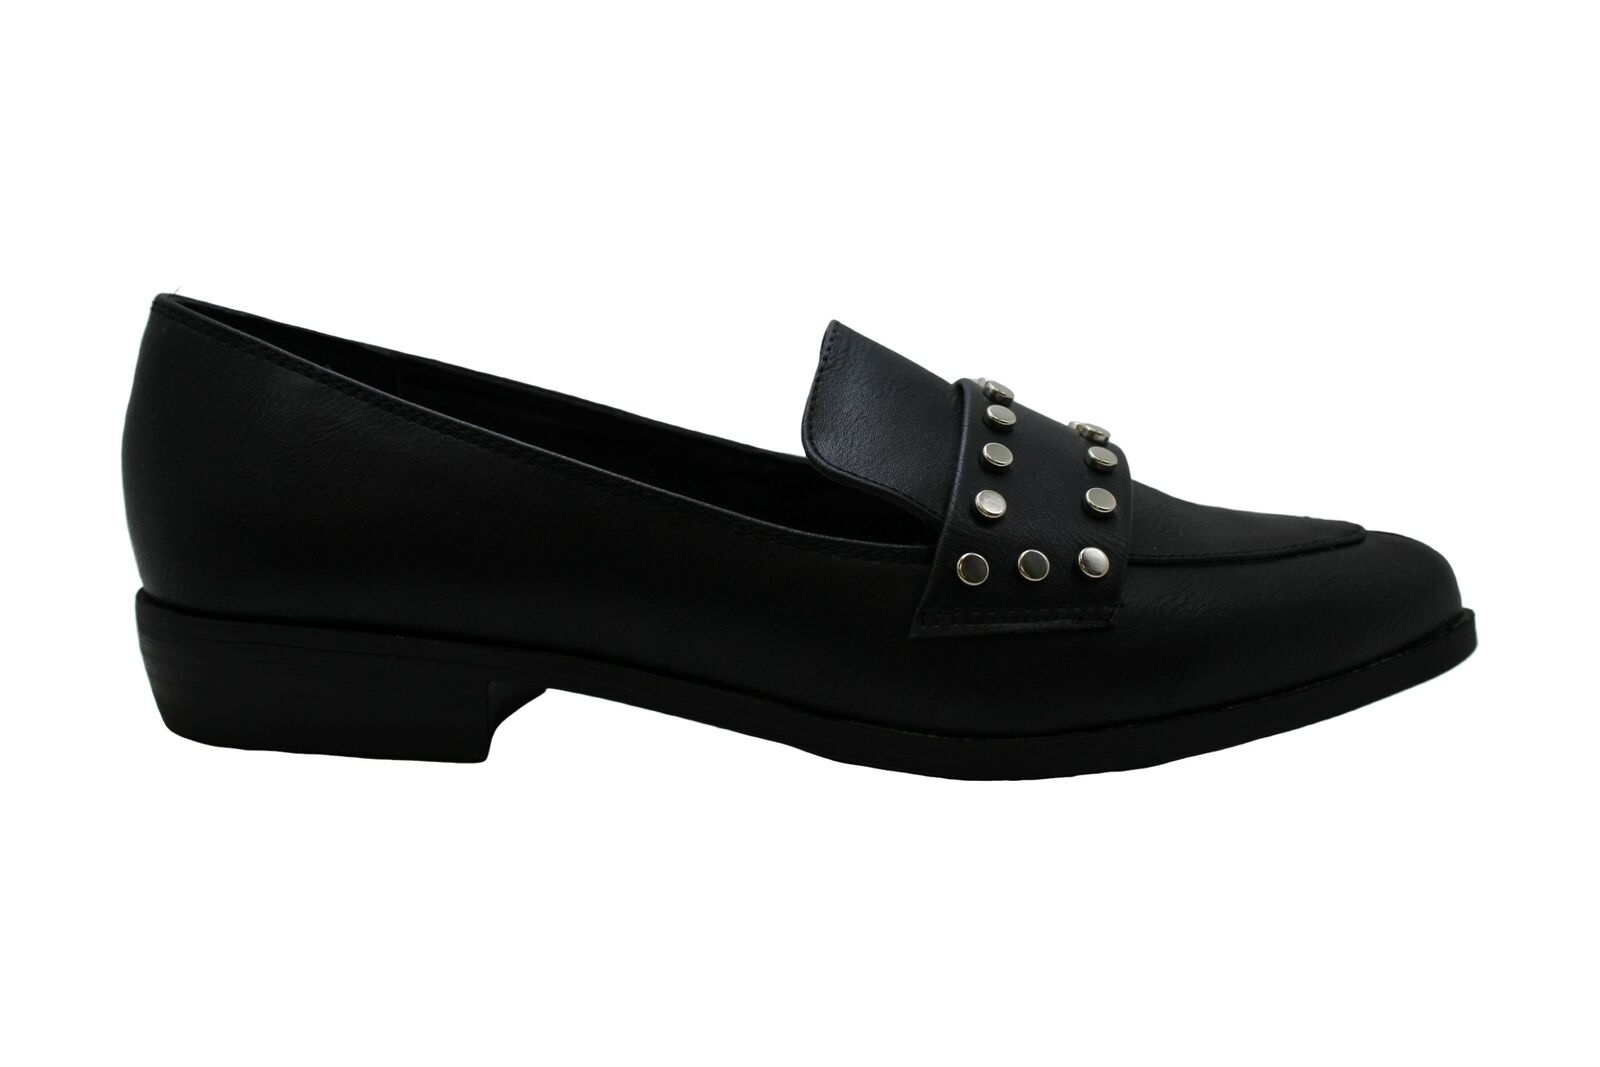 Bar III Womens Involve Pointed Toe Loafers, Black SM, Size 6.5 8cU8 US